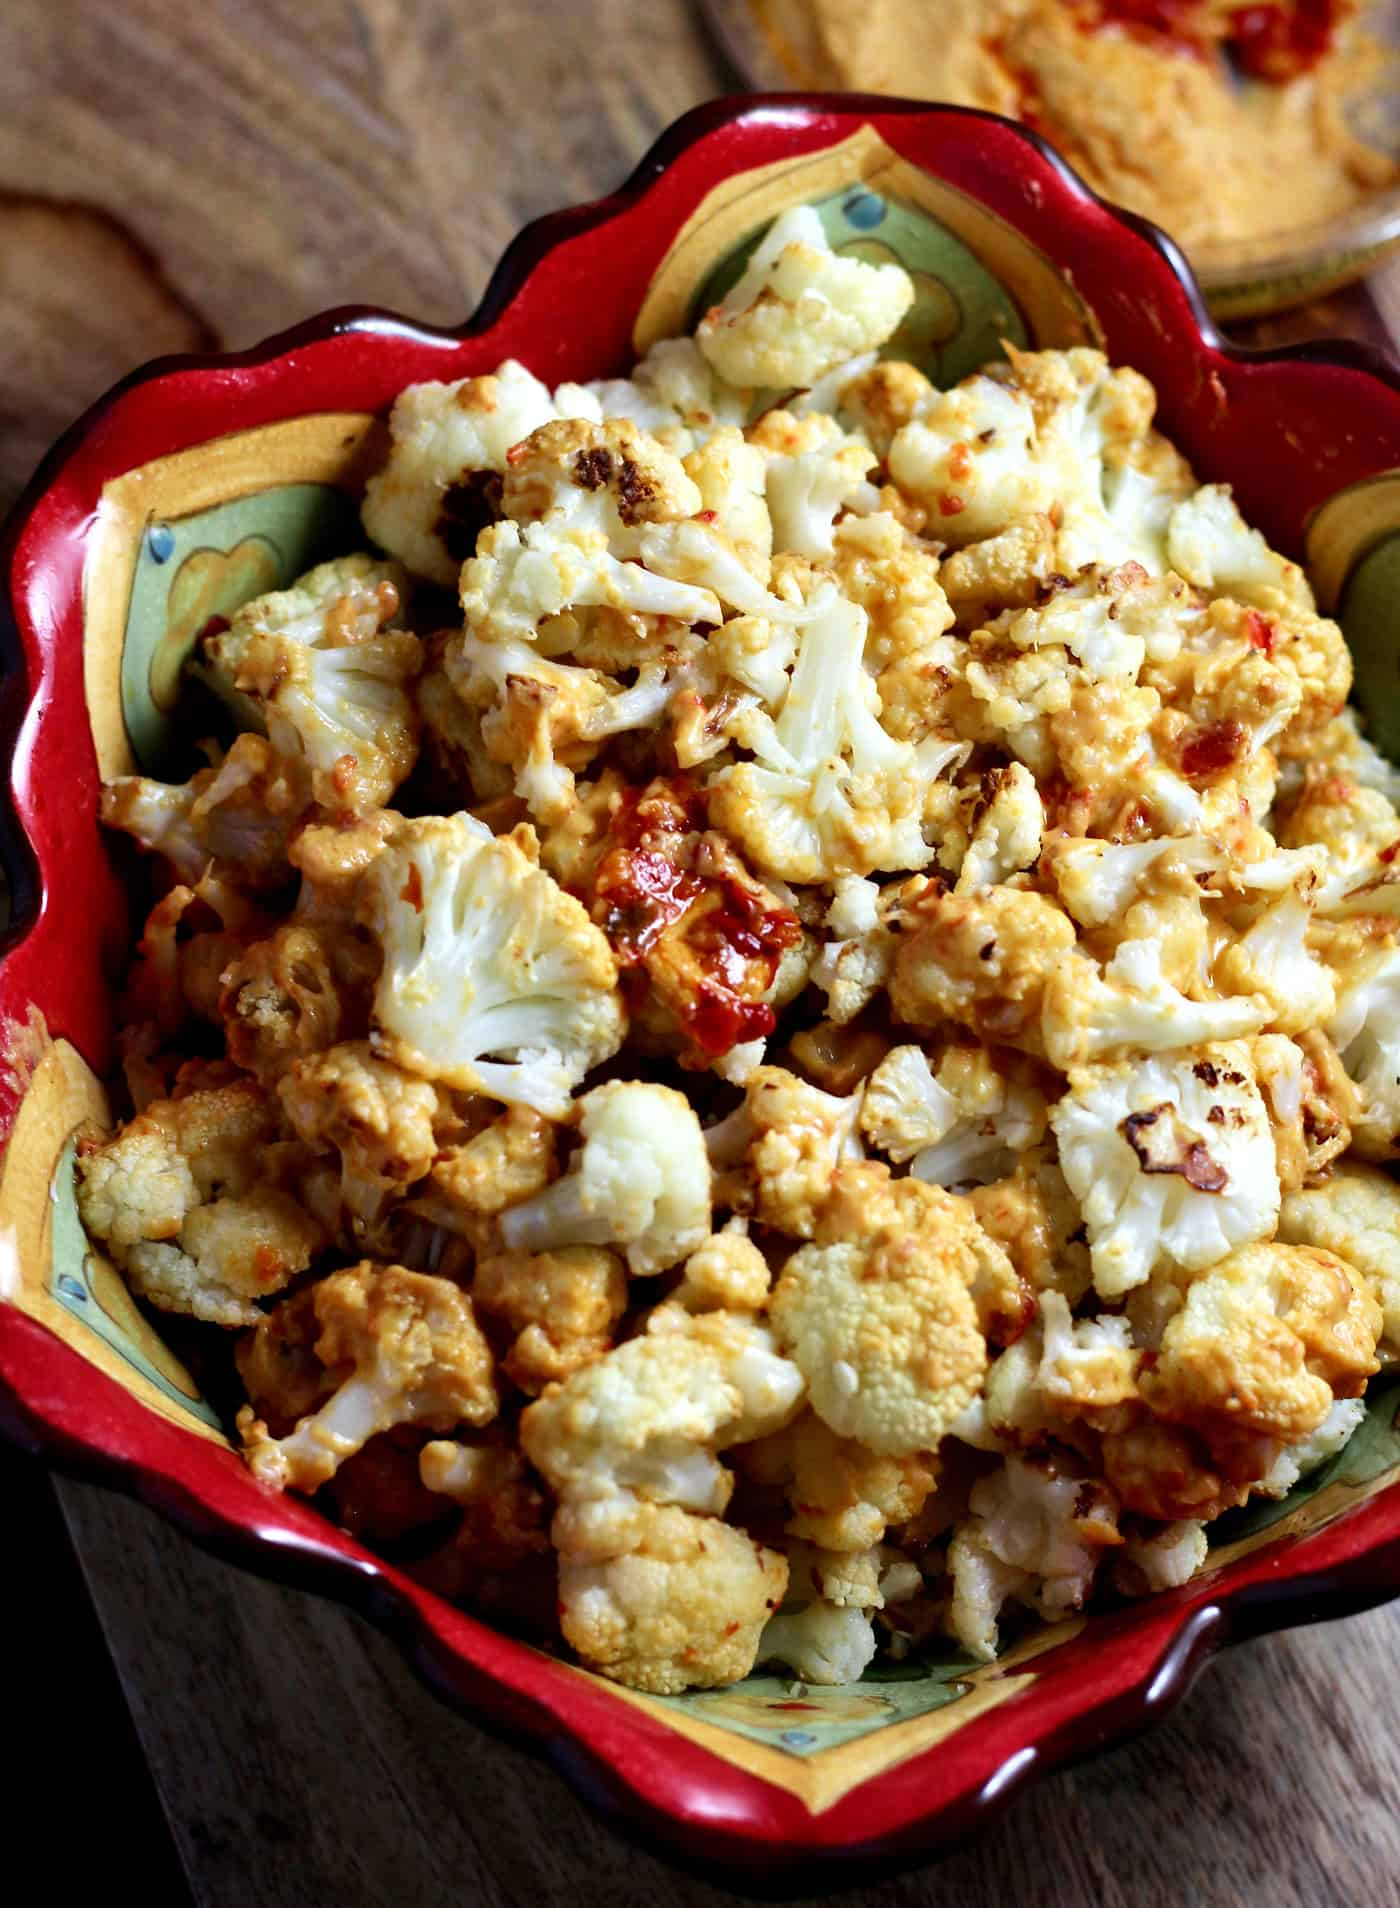 Roasted Cauliflower with Hummus